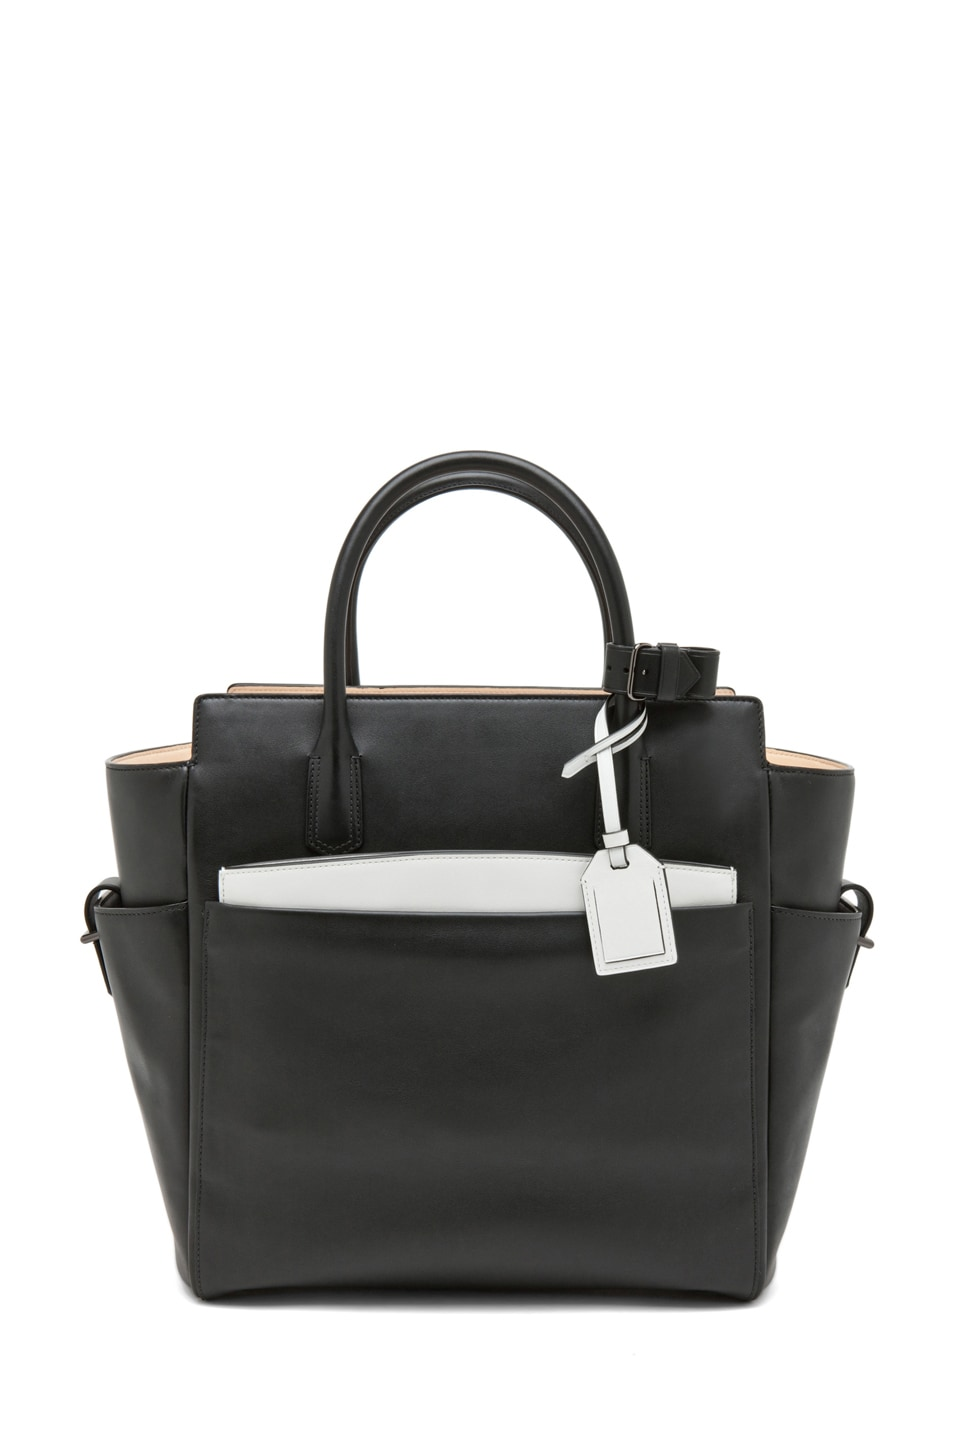 Image 1 of Reed Krakoff Atlantique in Black/White Multi